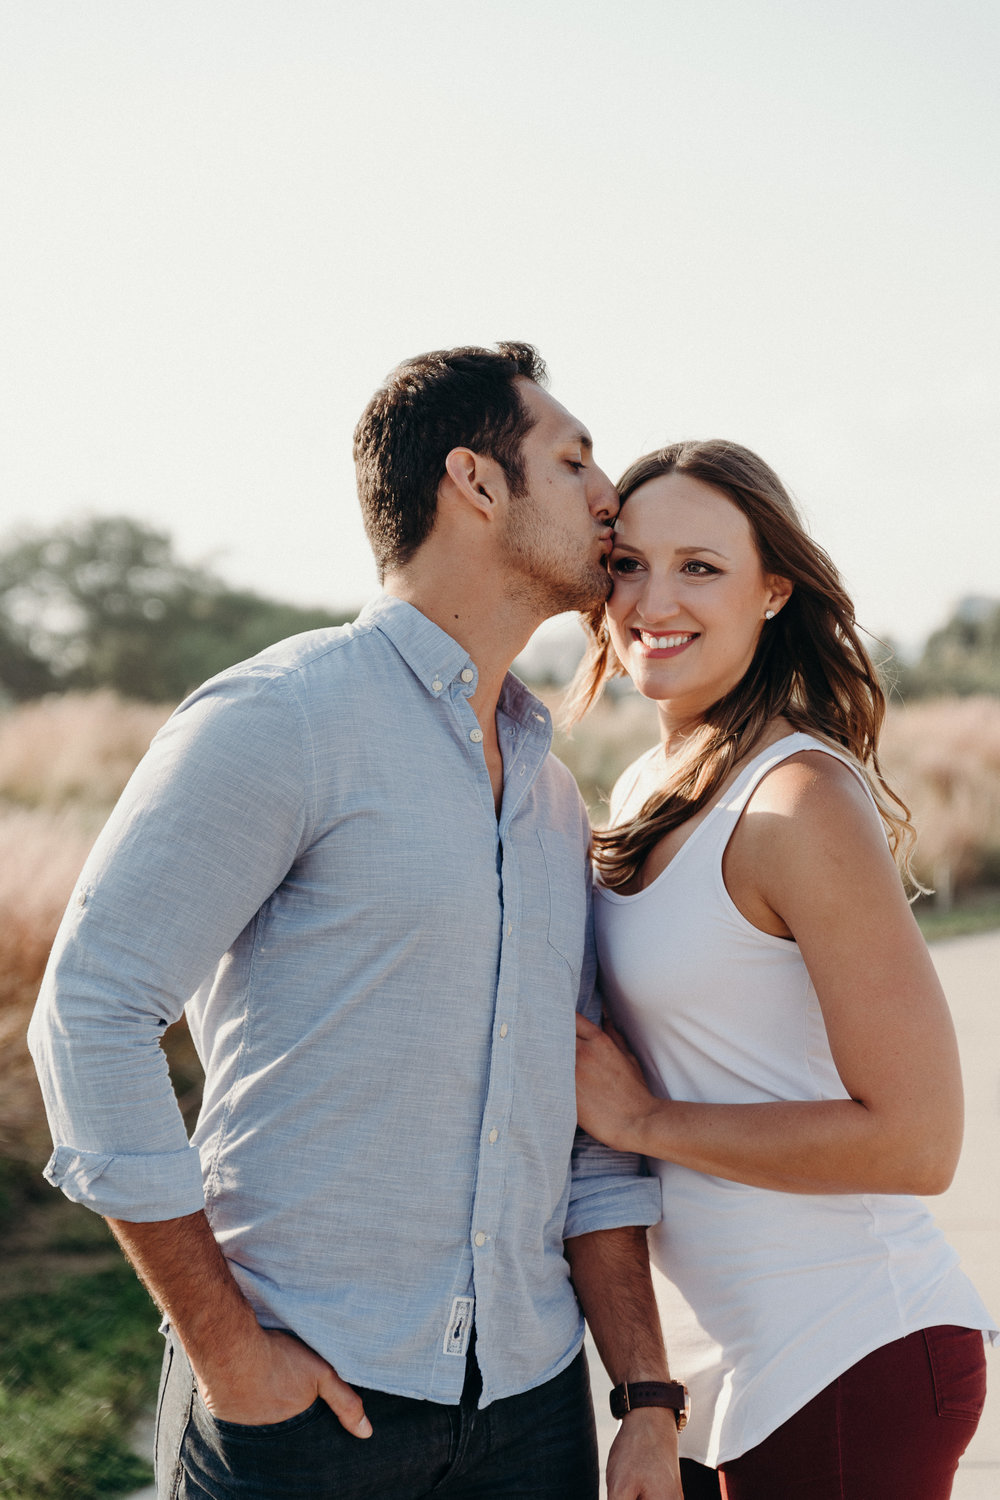 Woman smiles as her fiancé kisses her on the forehead.